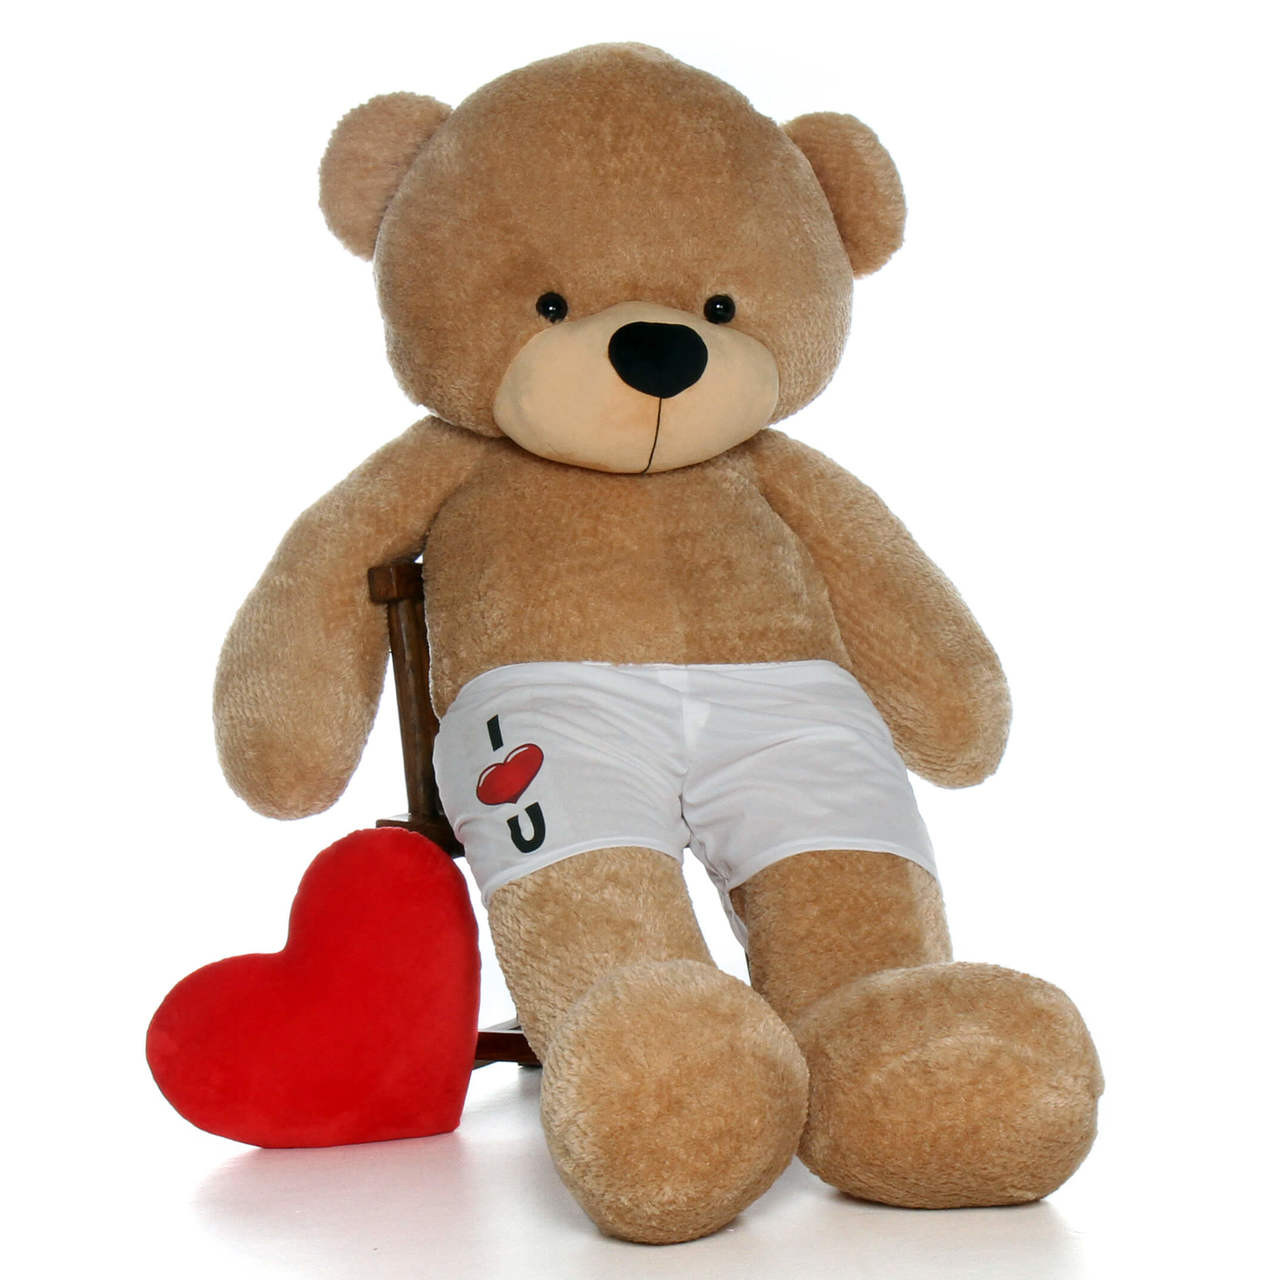 72in Giant Teddy Shaggy Amber Cuddles in I Heart U Boxers